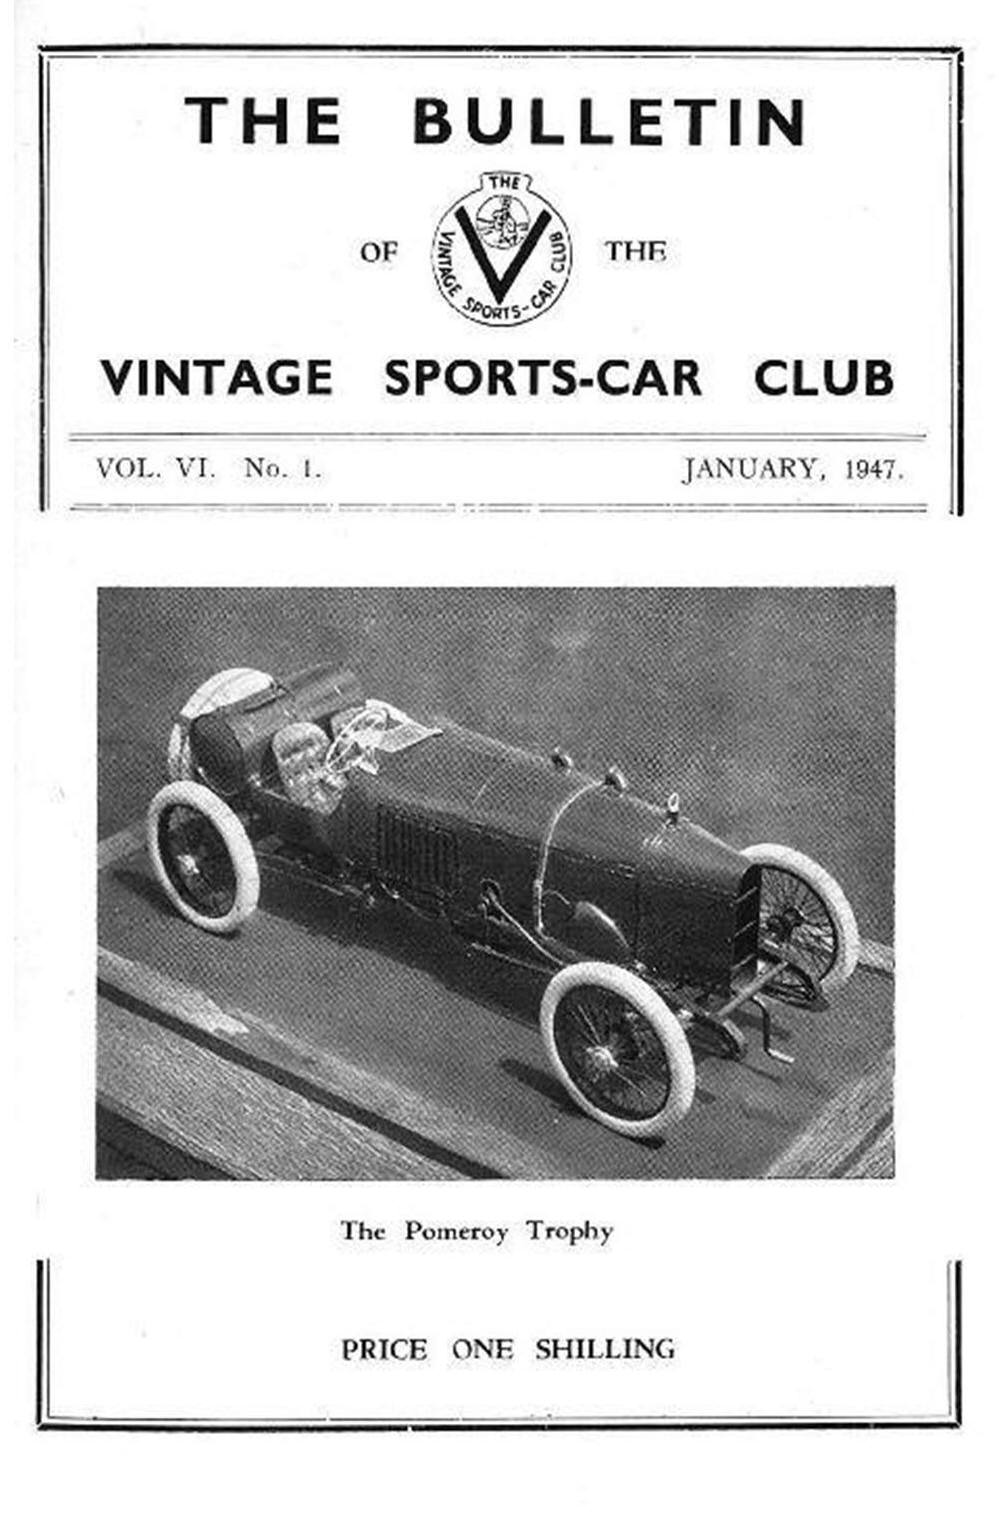 Pomeroy Trophy.   Bisley - November 24th.    1922 G.P. ASton Martin cover